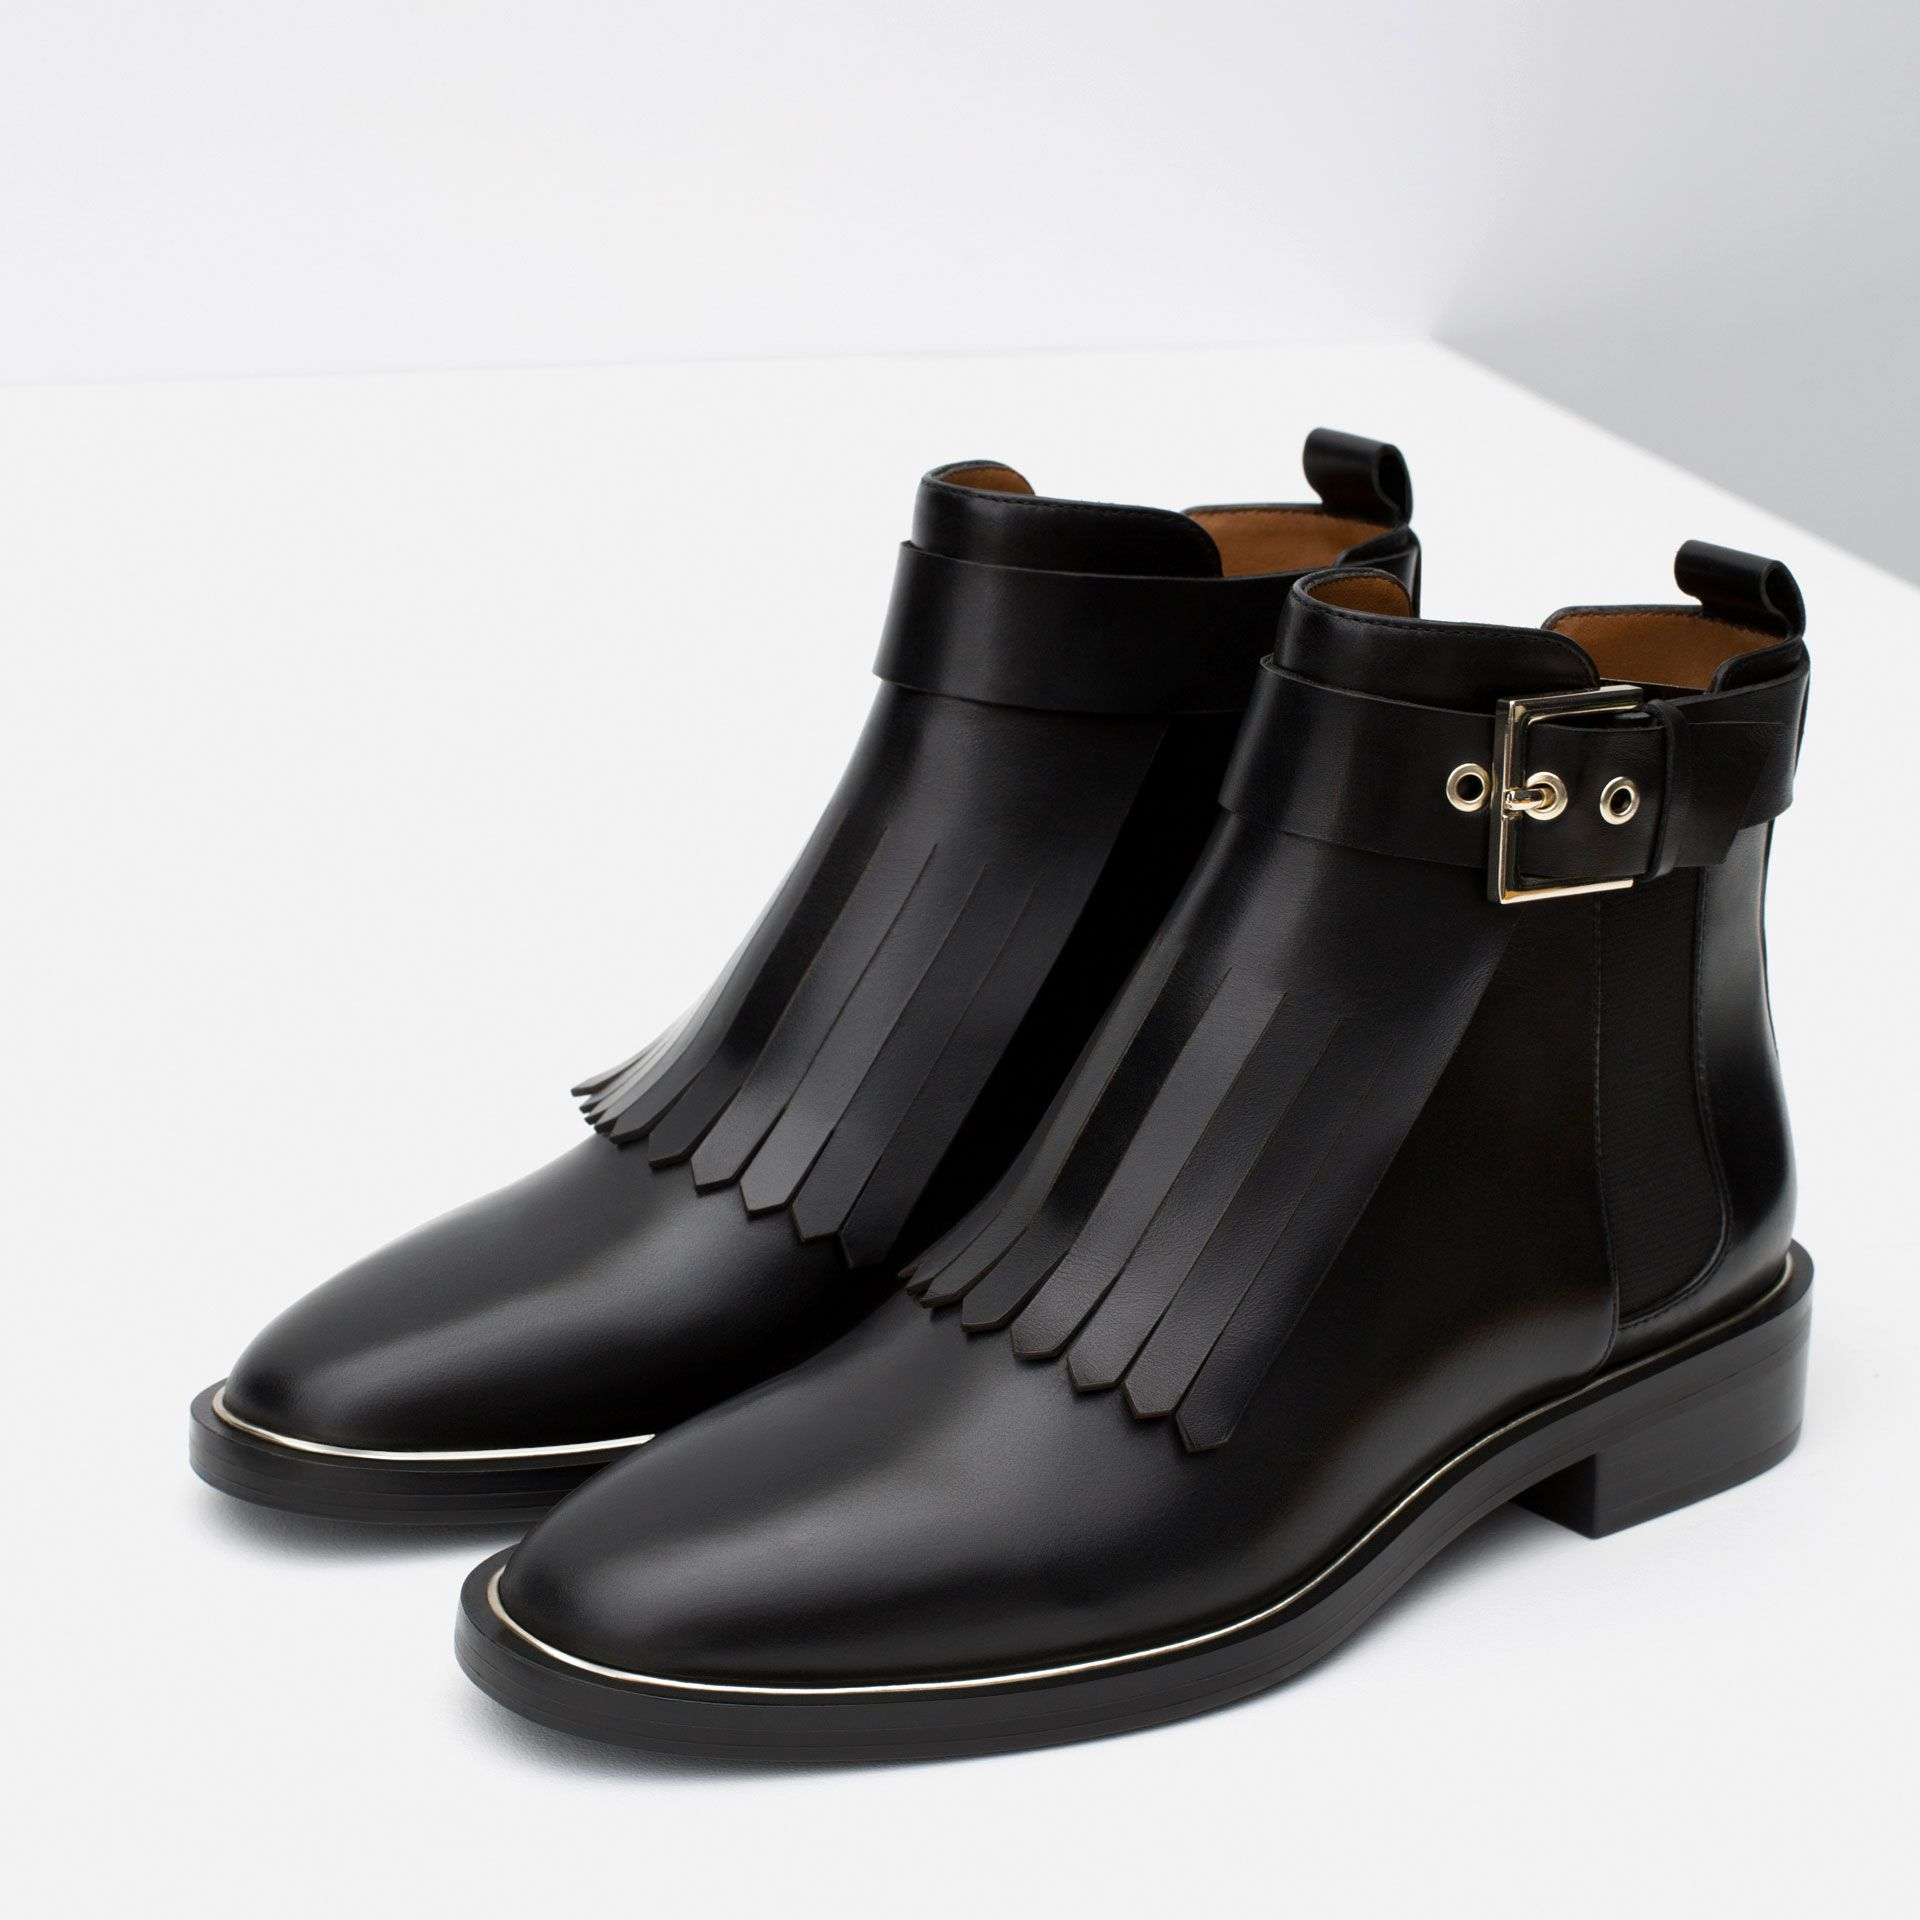 88daf4f7b2a BOTTINES EN CUIR ET À FRANGES - Chaussures - Femme - COLLECTION AW15 ...